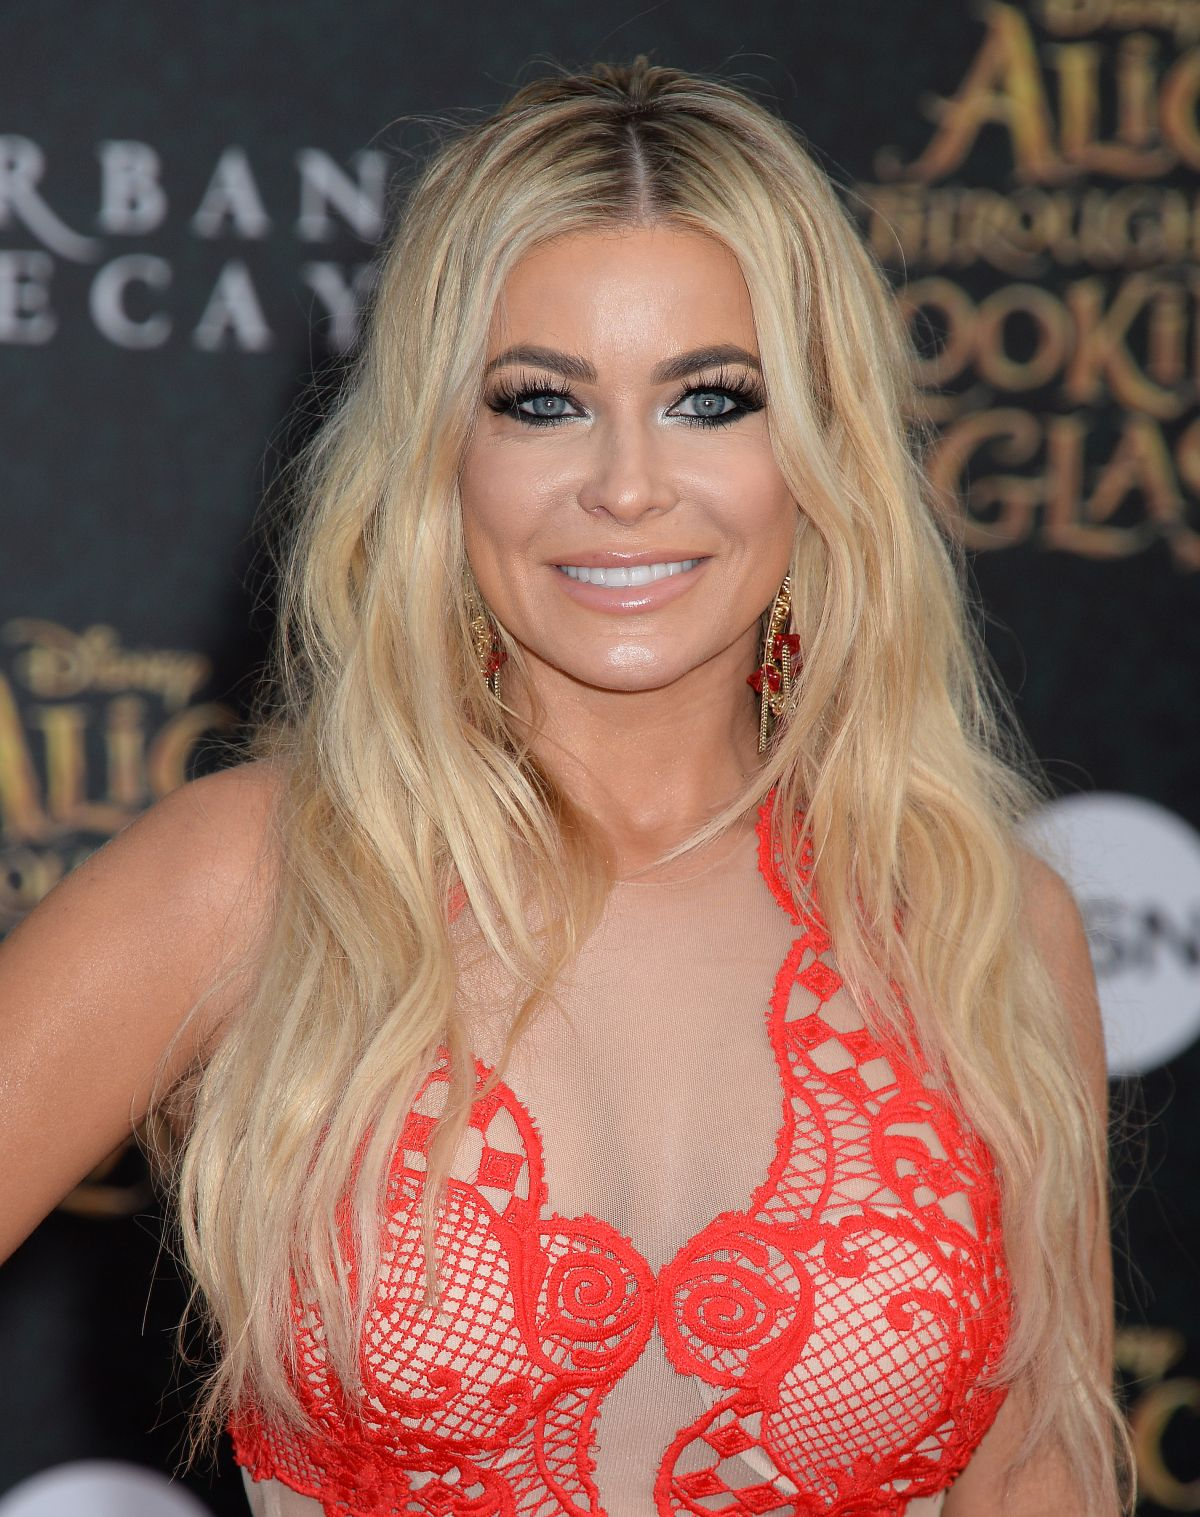 CARMEN ELECTRA at Alice Through the Looking Glass Premiere in ...